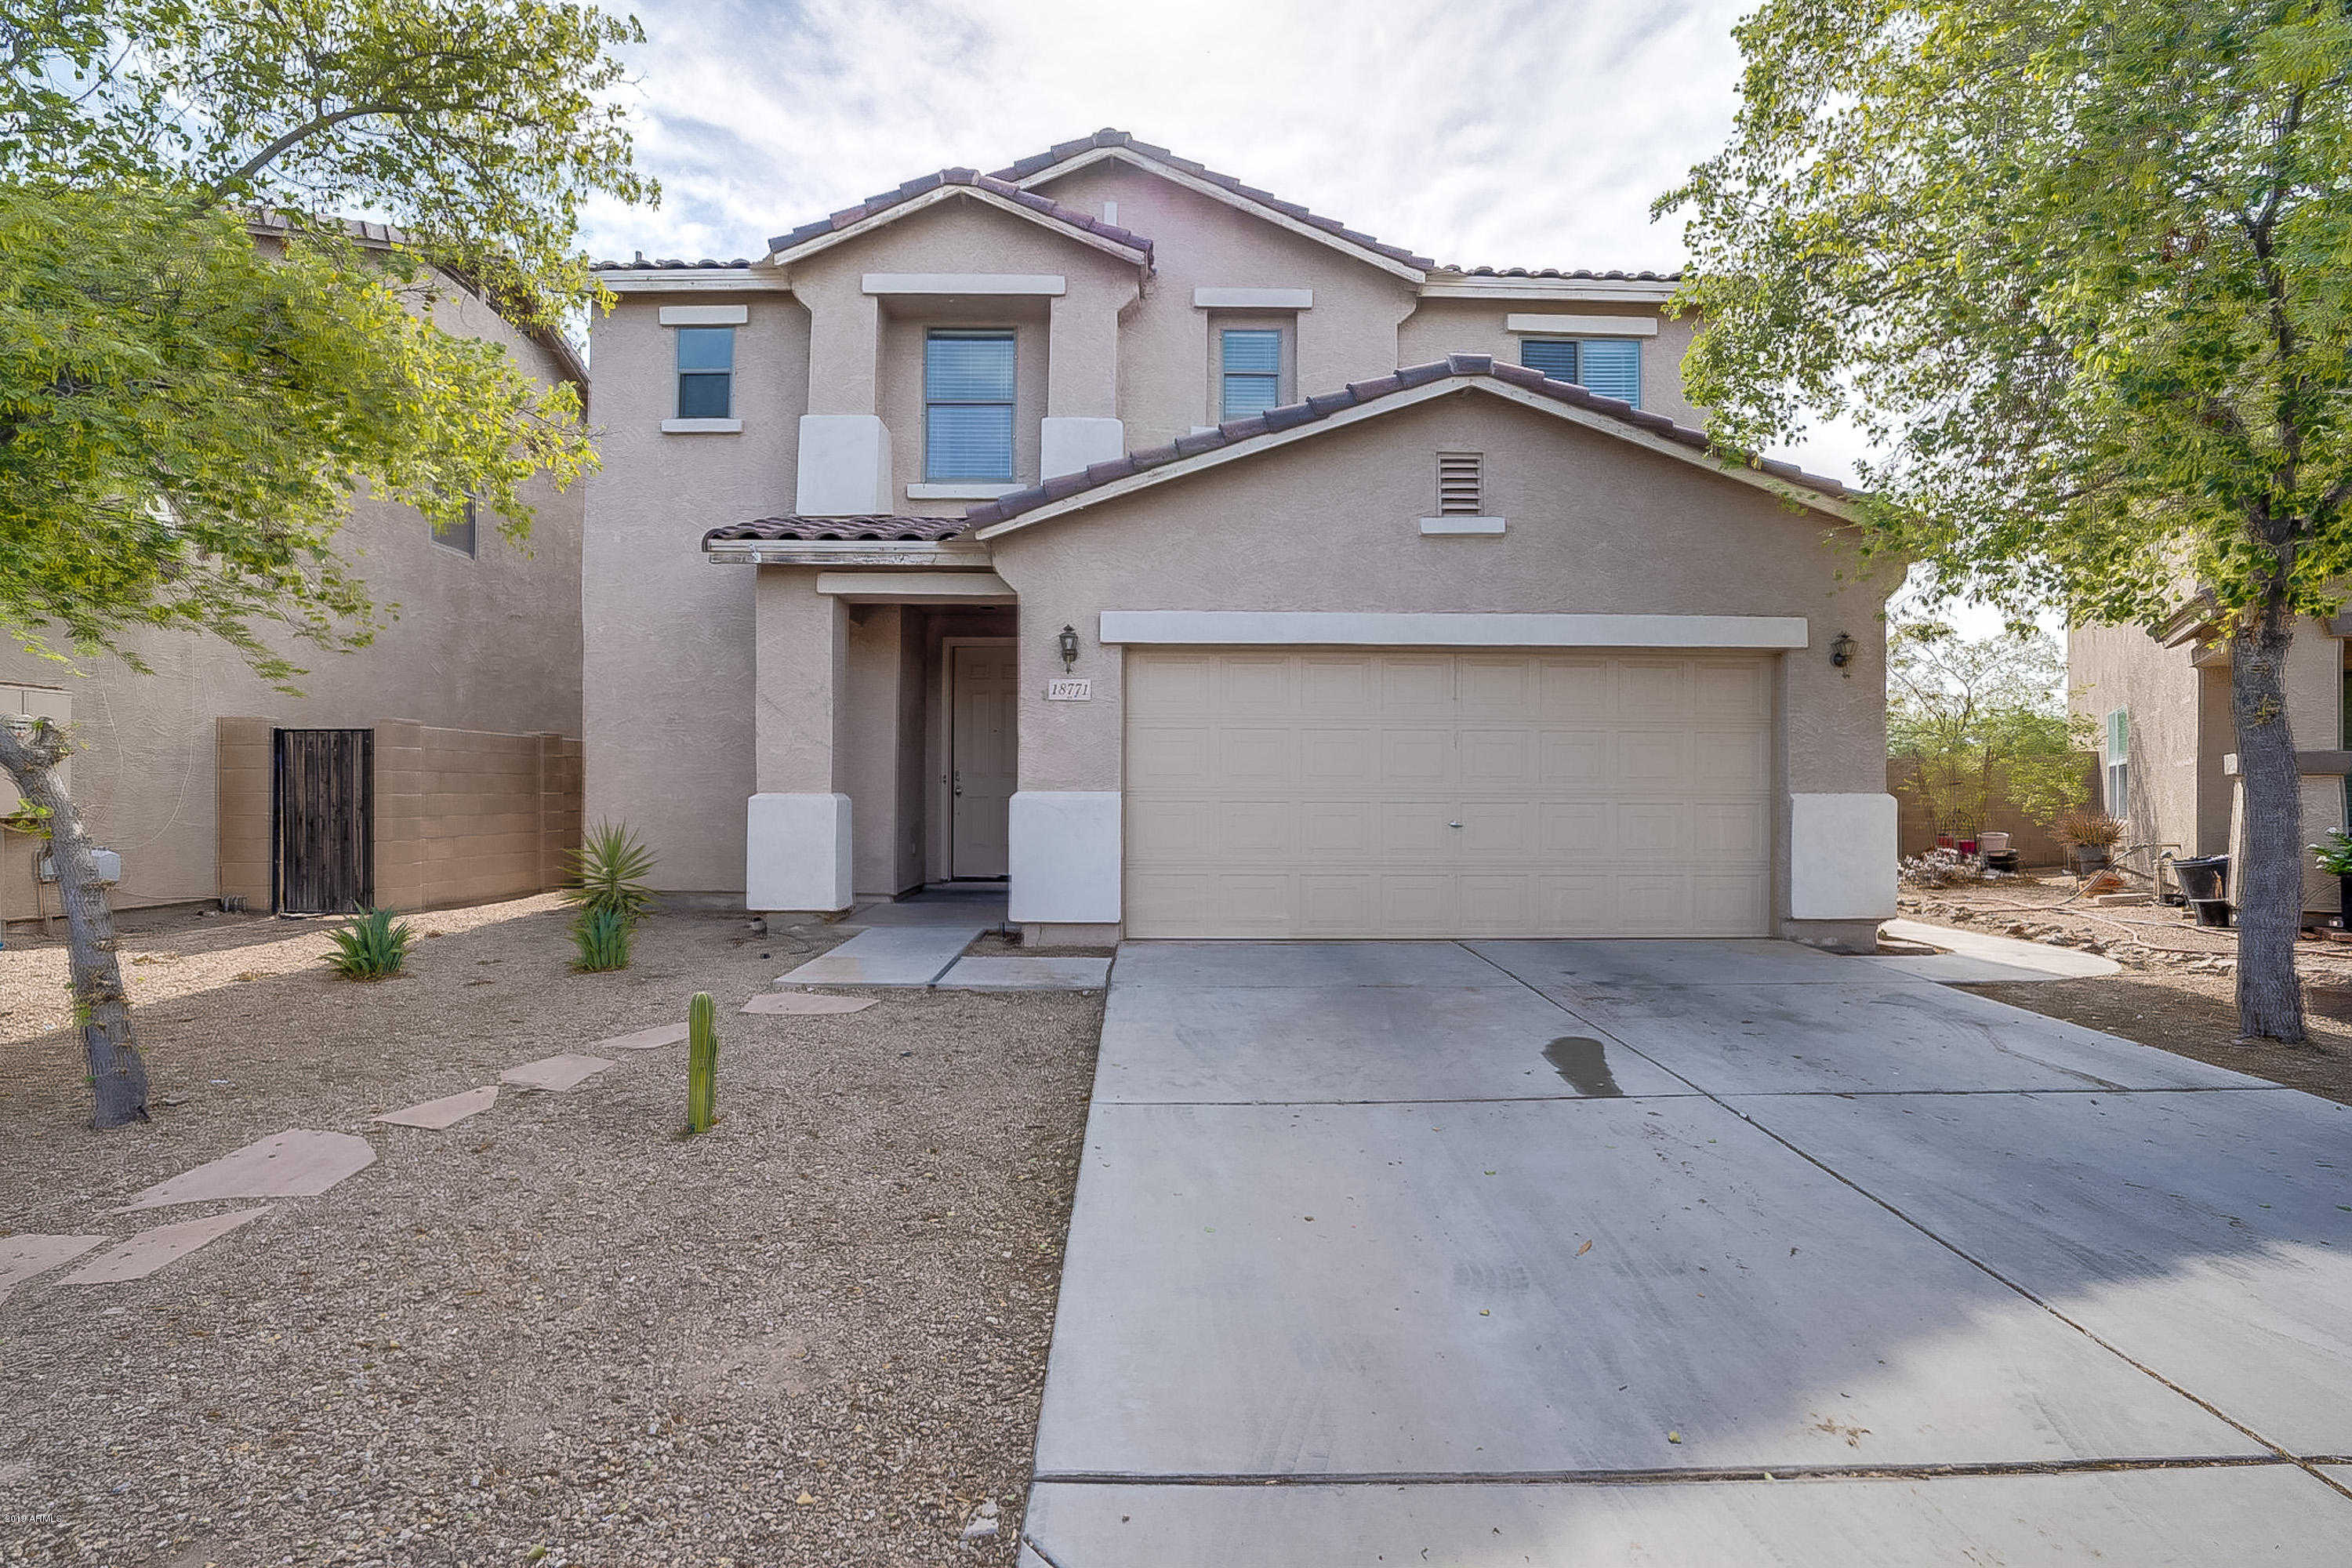 $200,000 - 3Br/3Ba - Home for Sale in Maricopa Meadows Parcel 3, Maricopa